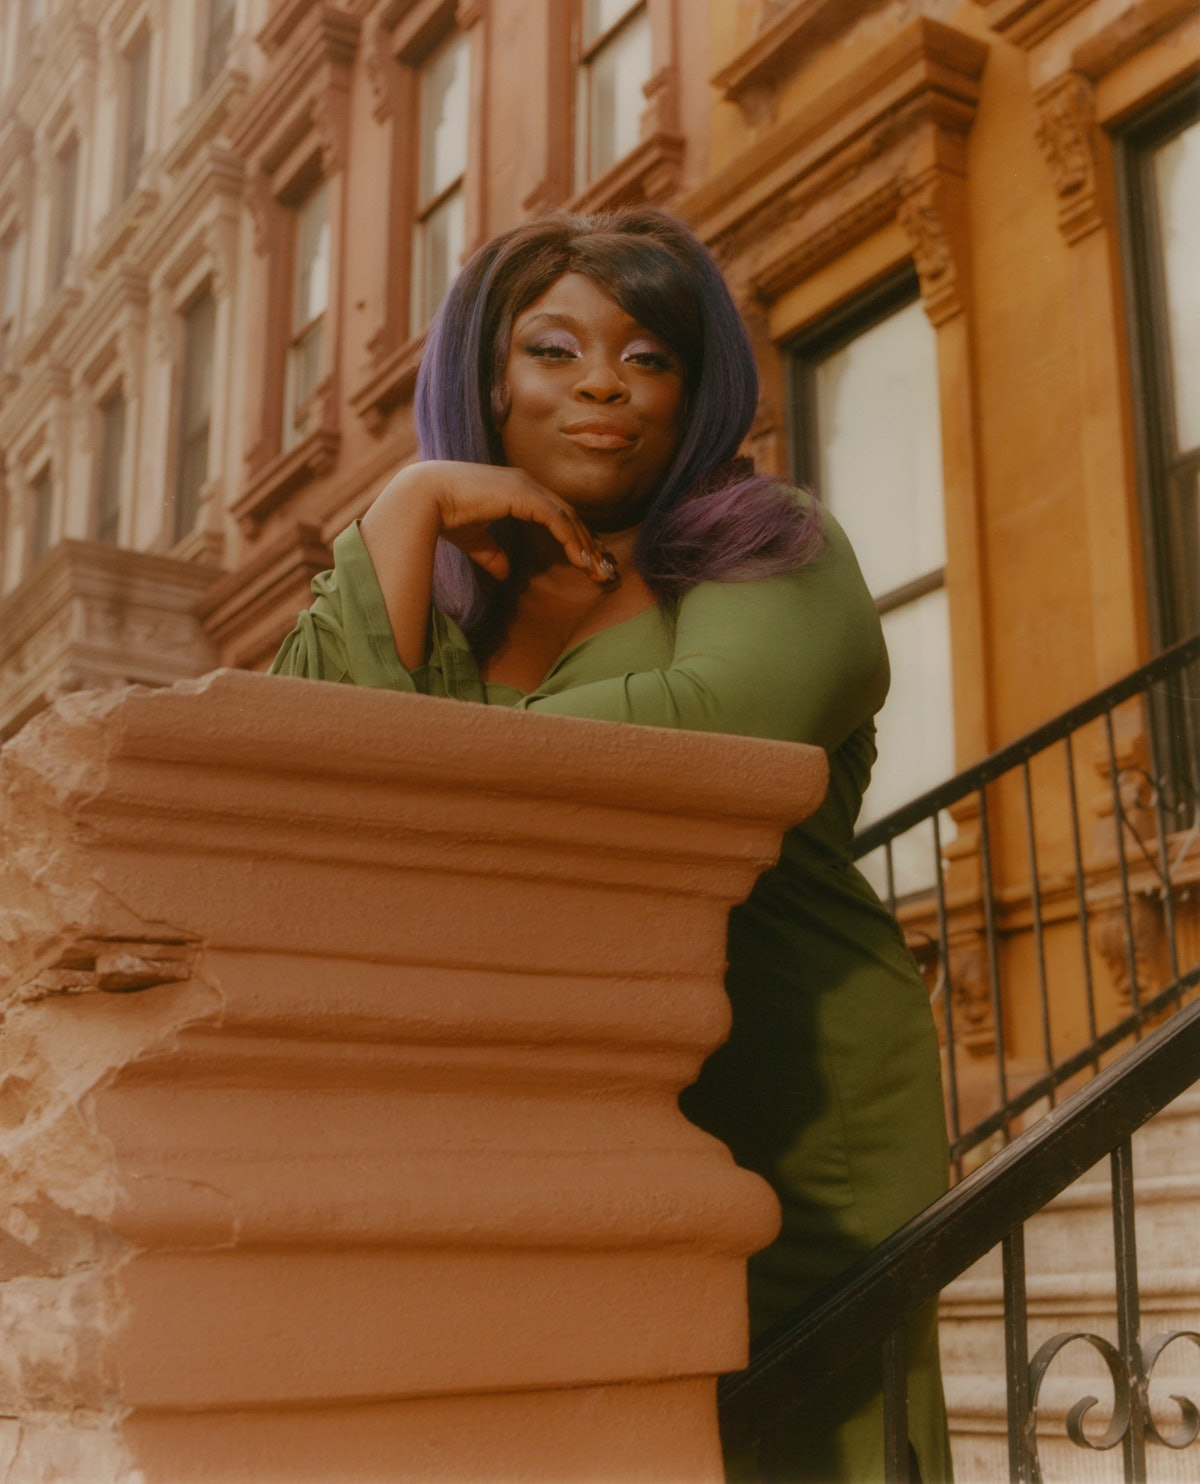 Yola stands on a stoop in a green dress